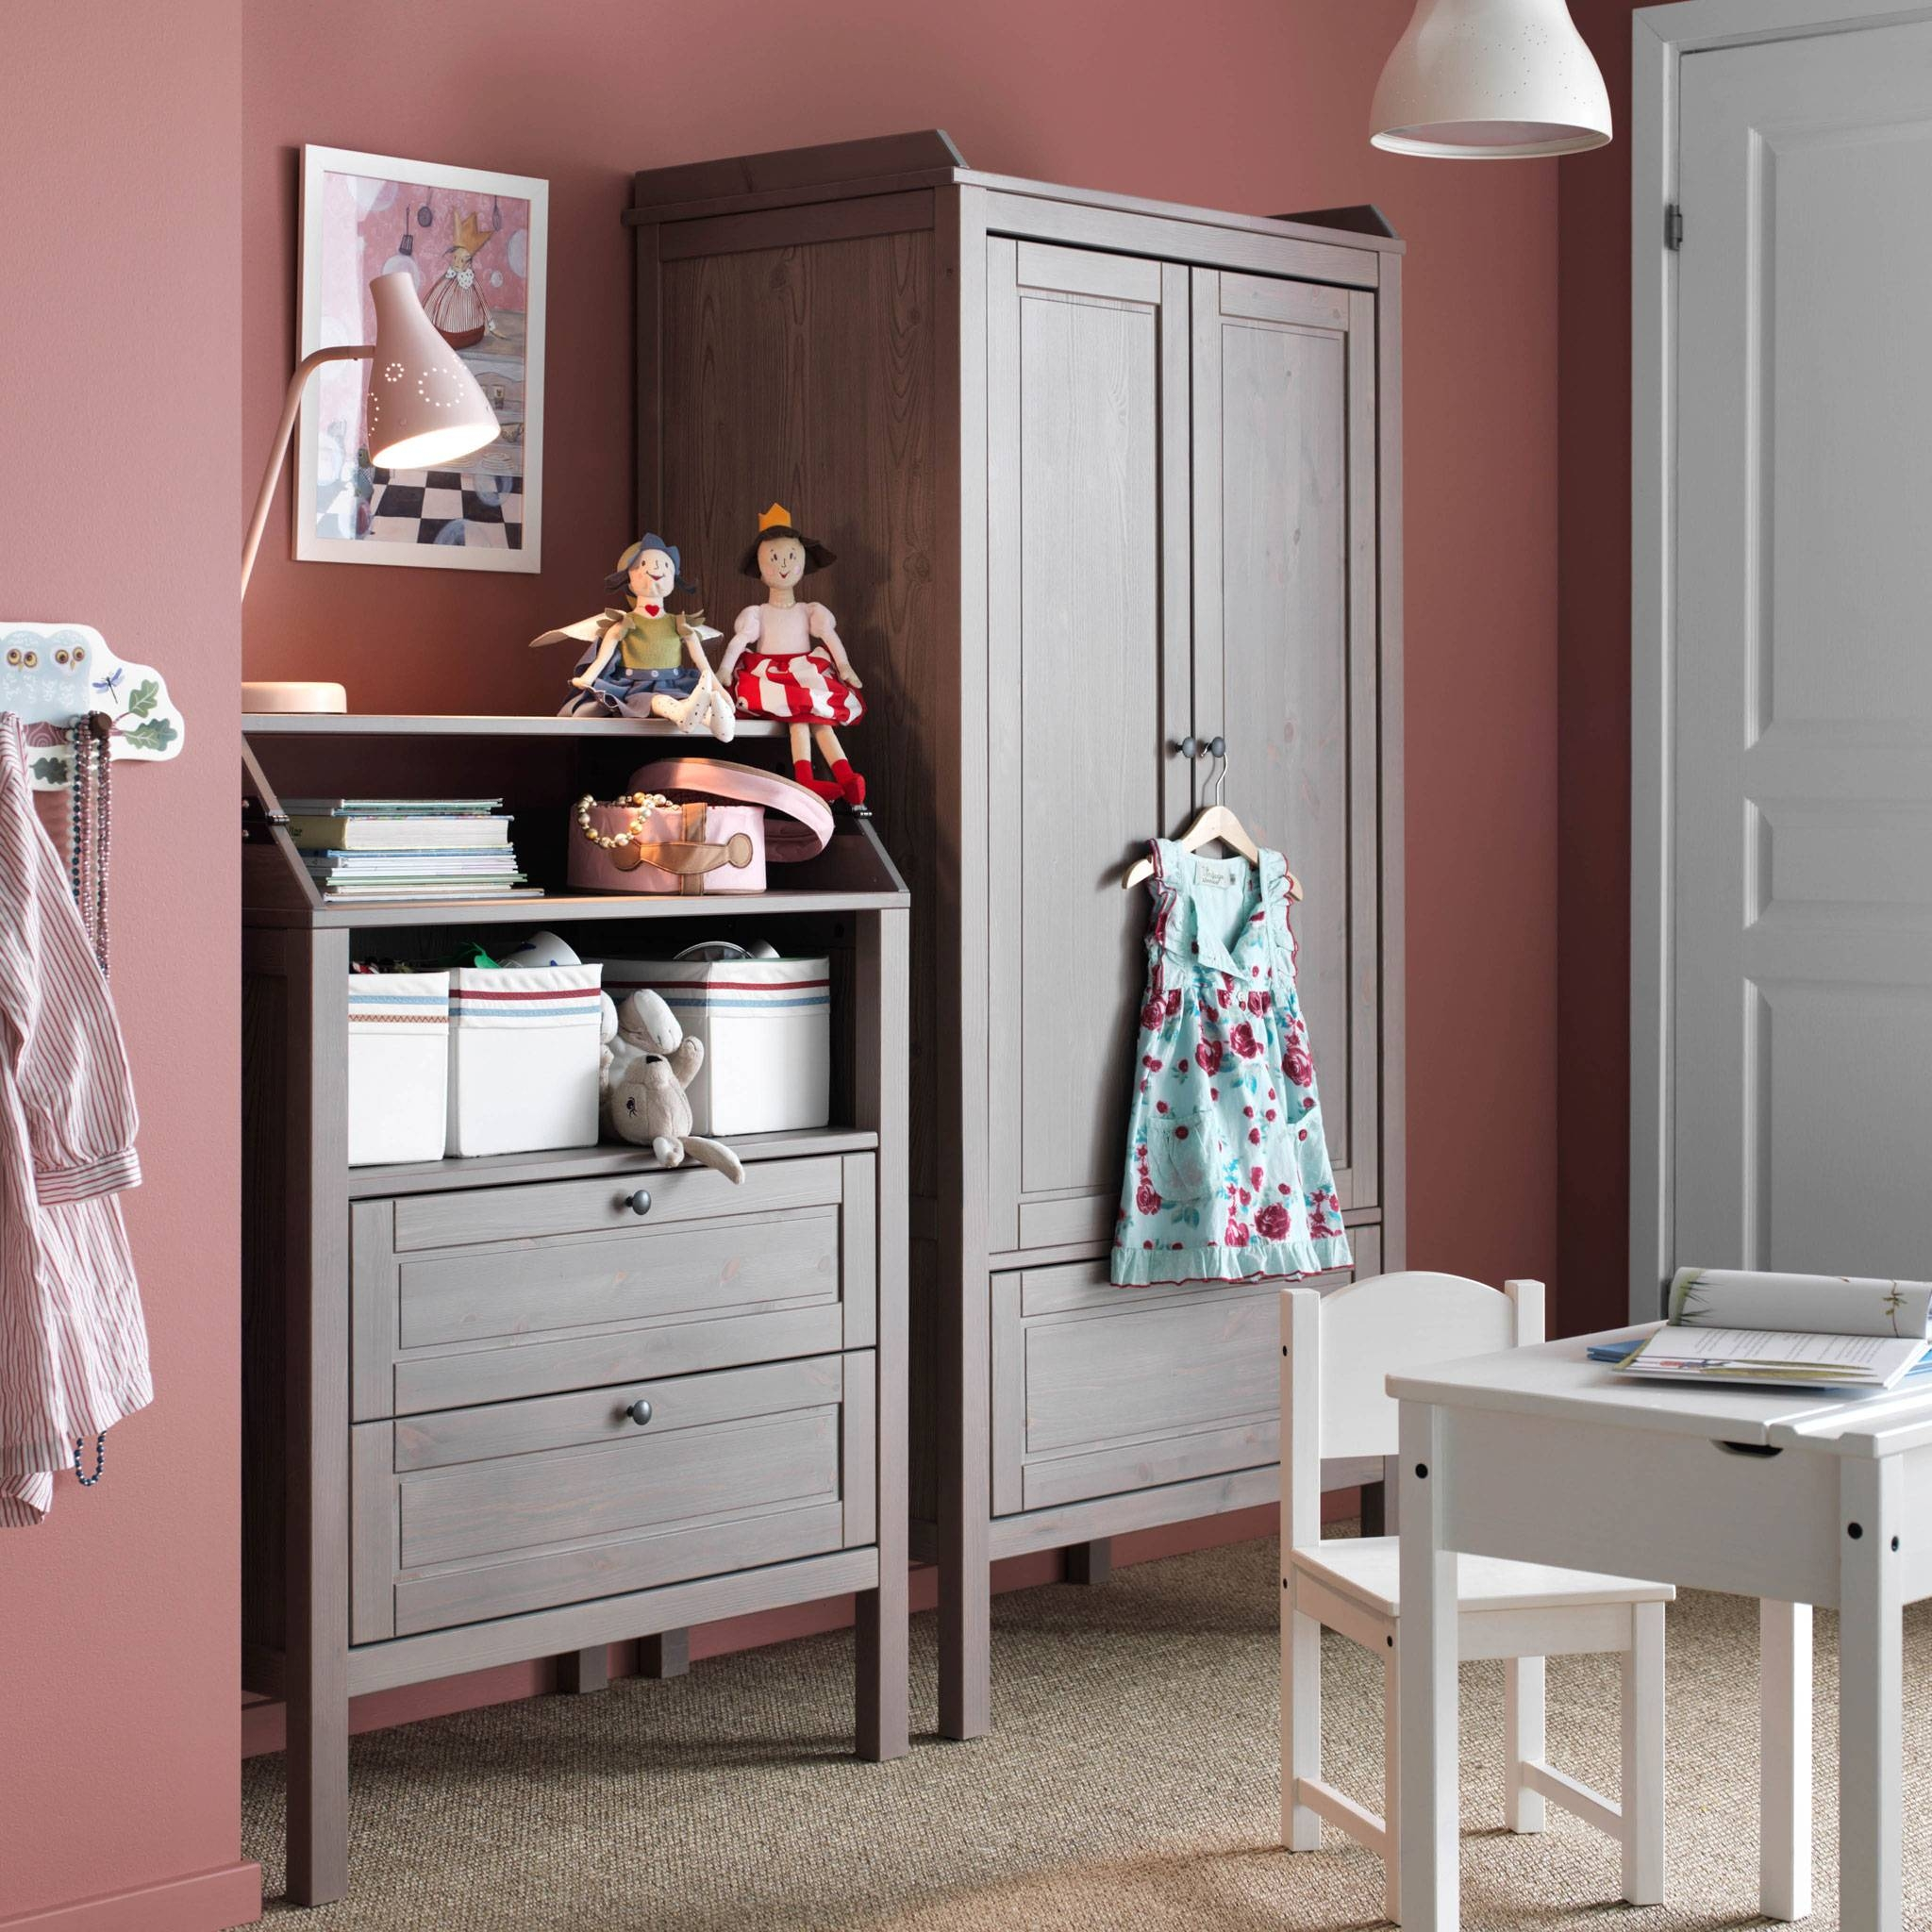 Children's Furniture & Ideas | Ikea in Wardrobes And Drawers Combo (Image 10 of 15)